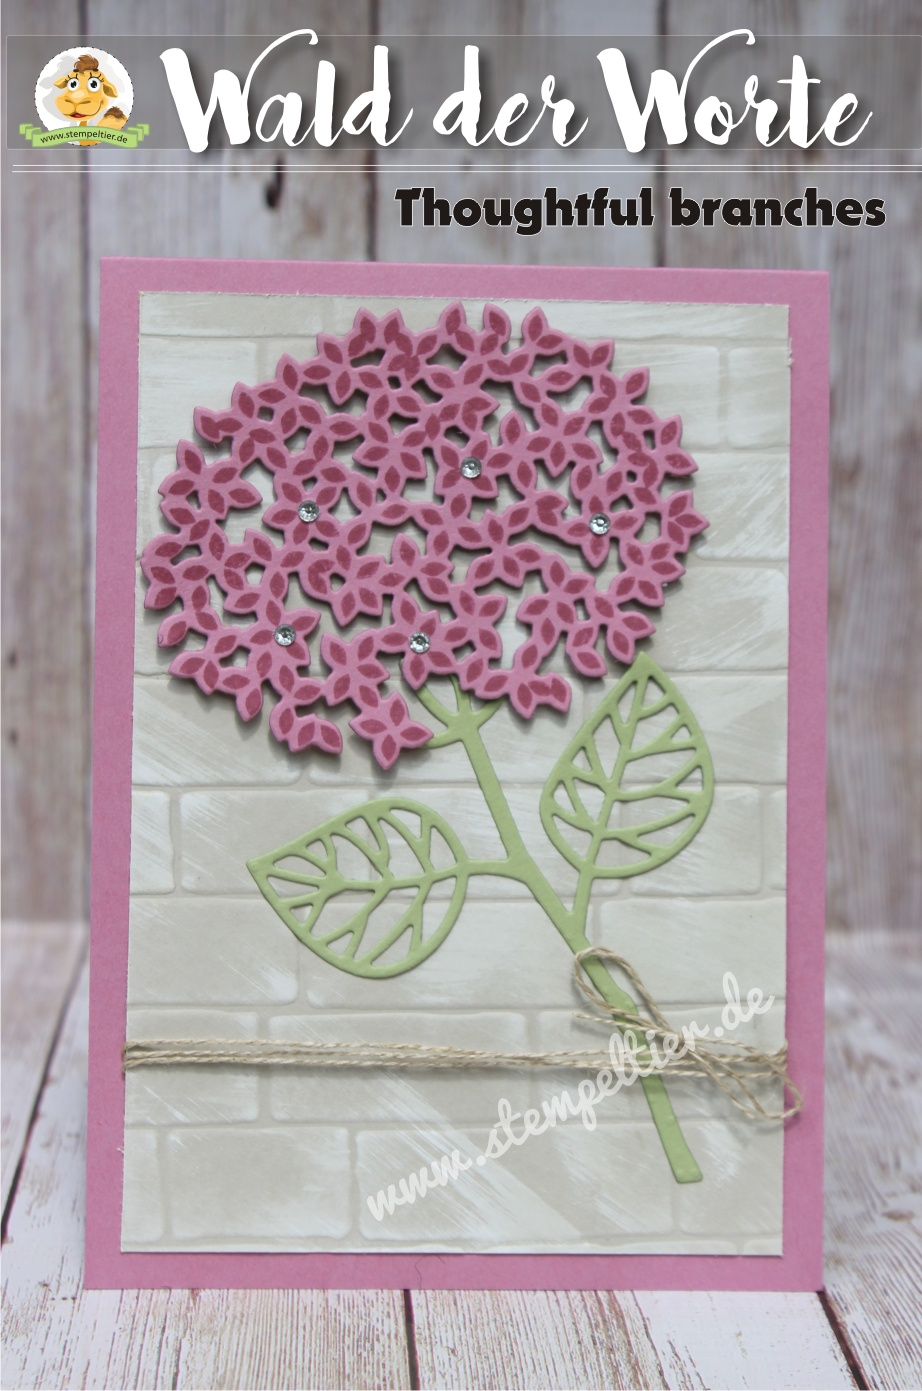 Stampin Up thoughtful branches Wald der Worte August Angebot vom Stempeltier hortensie hydrangea ziegel prägefolder